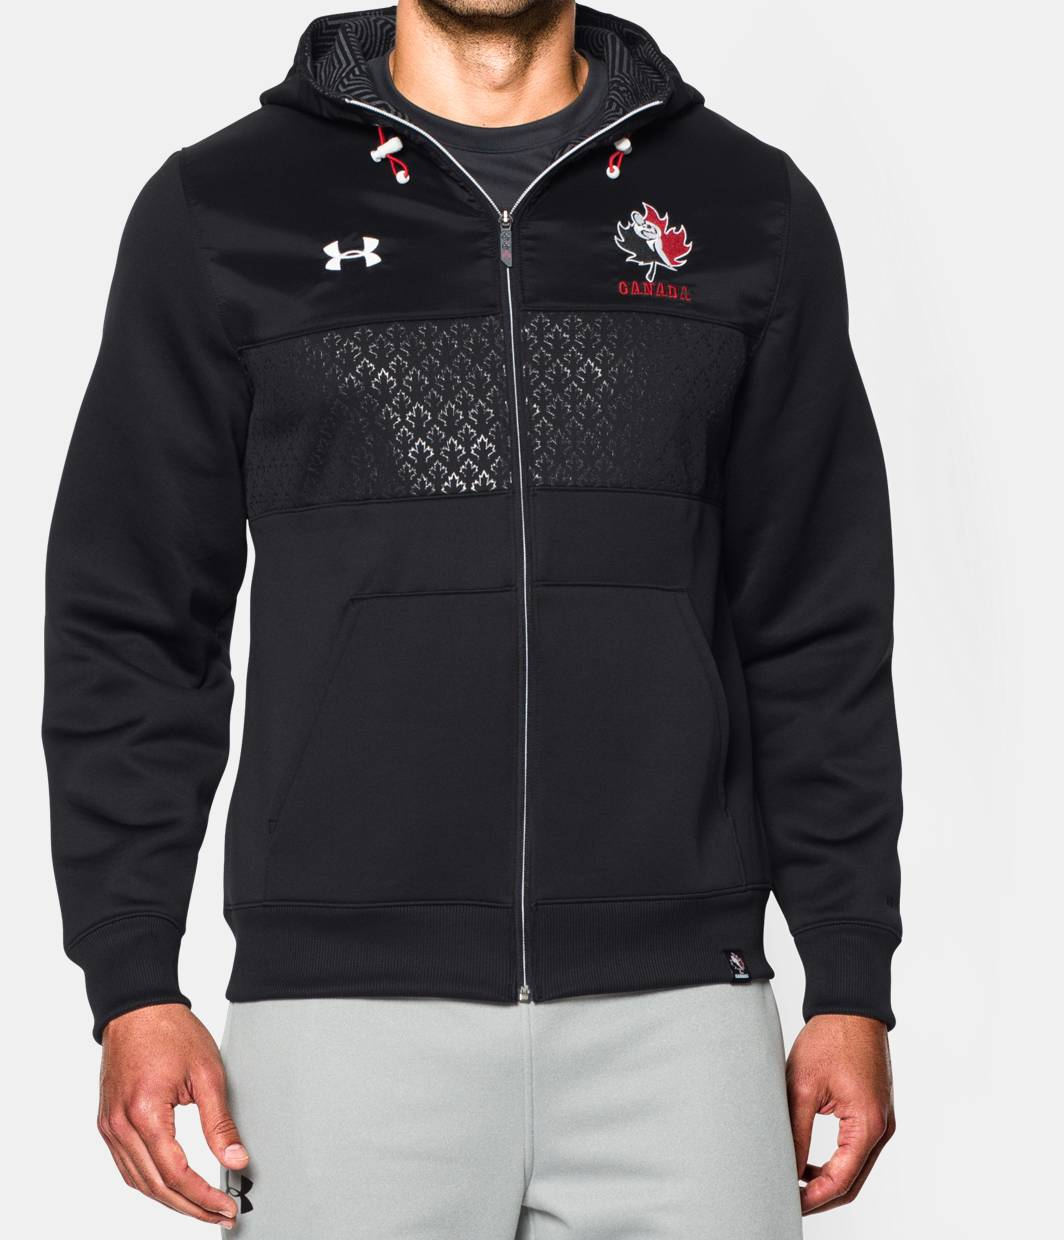 Design Under Armour Jackets Online. Low Minimums & No Set-Ups. Step up your corporate game with custom Under Armour jackets. By adding your company logo, you align your business with a brand known for high quality and a dedication to perfection.